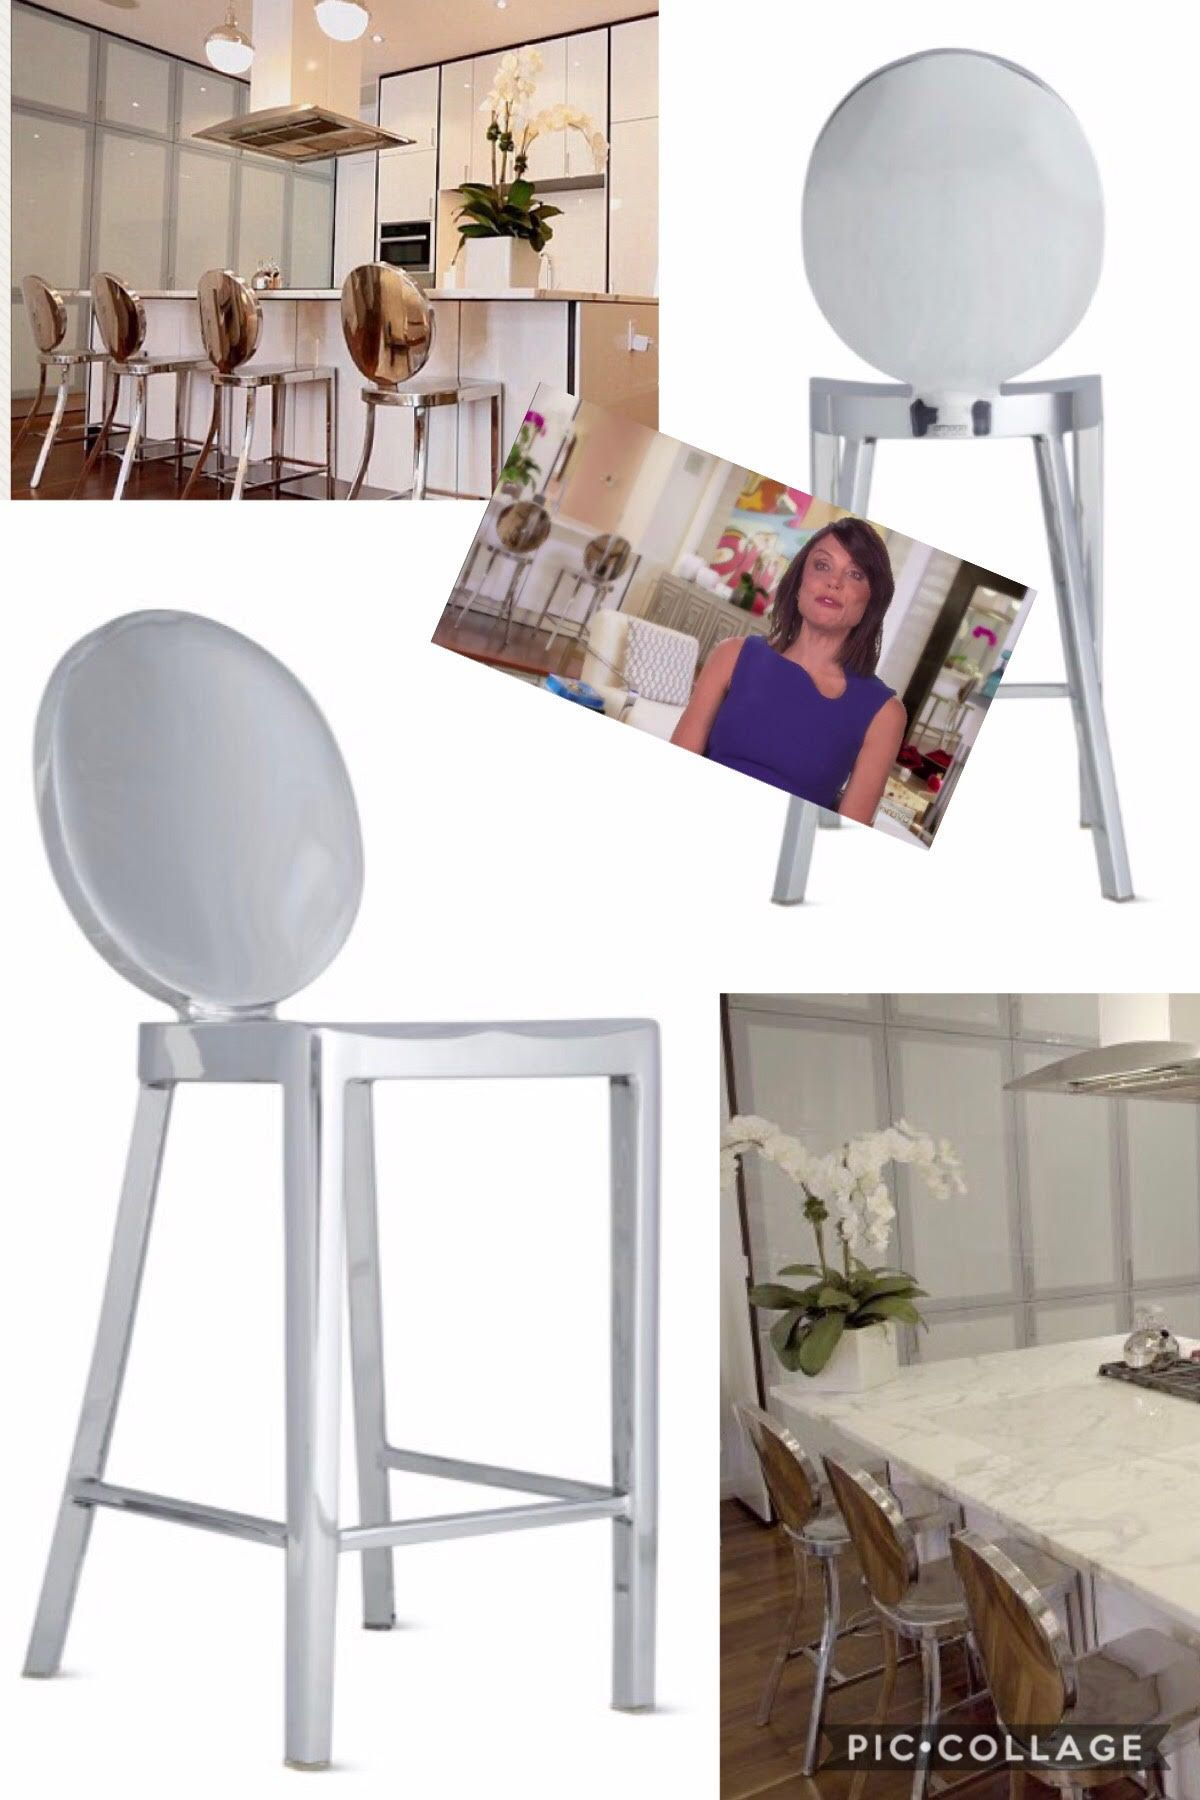 Charming Bethenny Frankelu0027s Silver Mirrored Chair Season 7 Real Housewives Of New  York Interior Design / Furniture ...